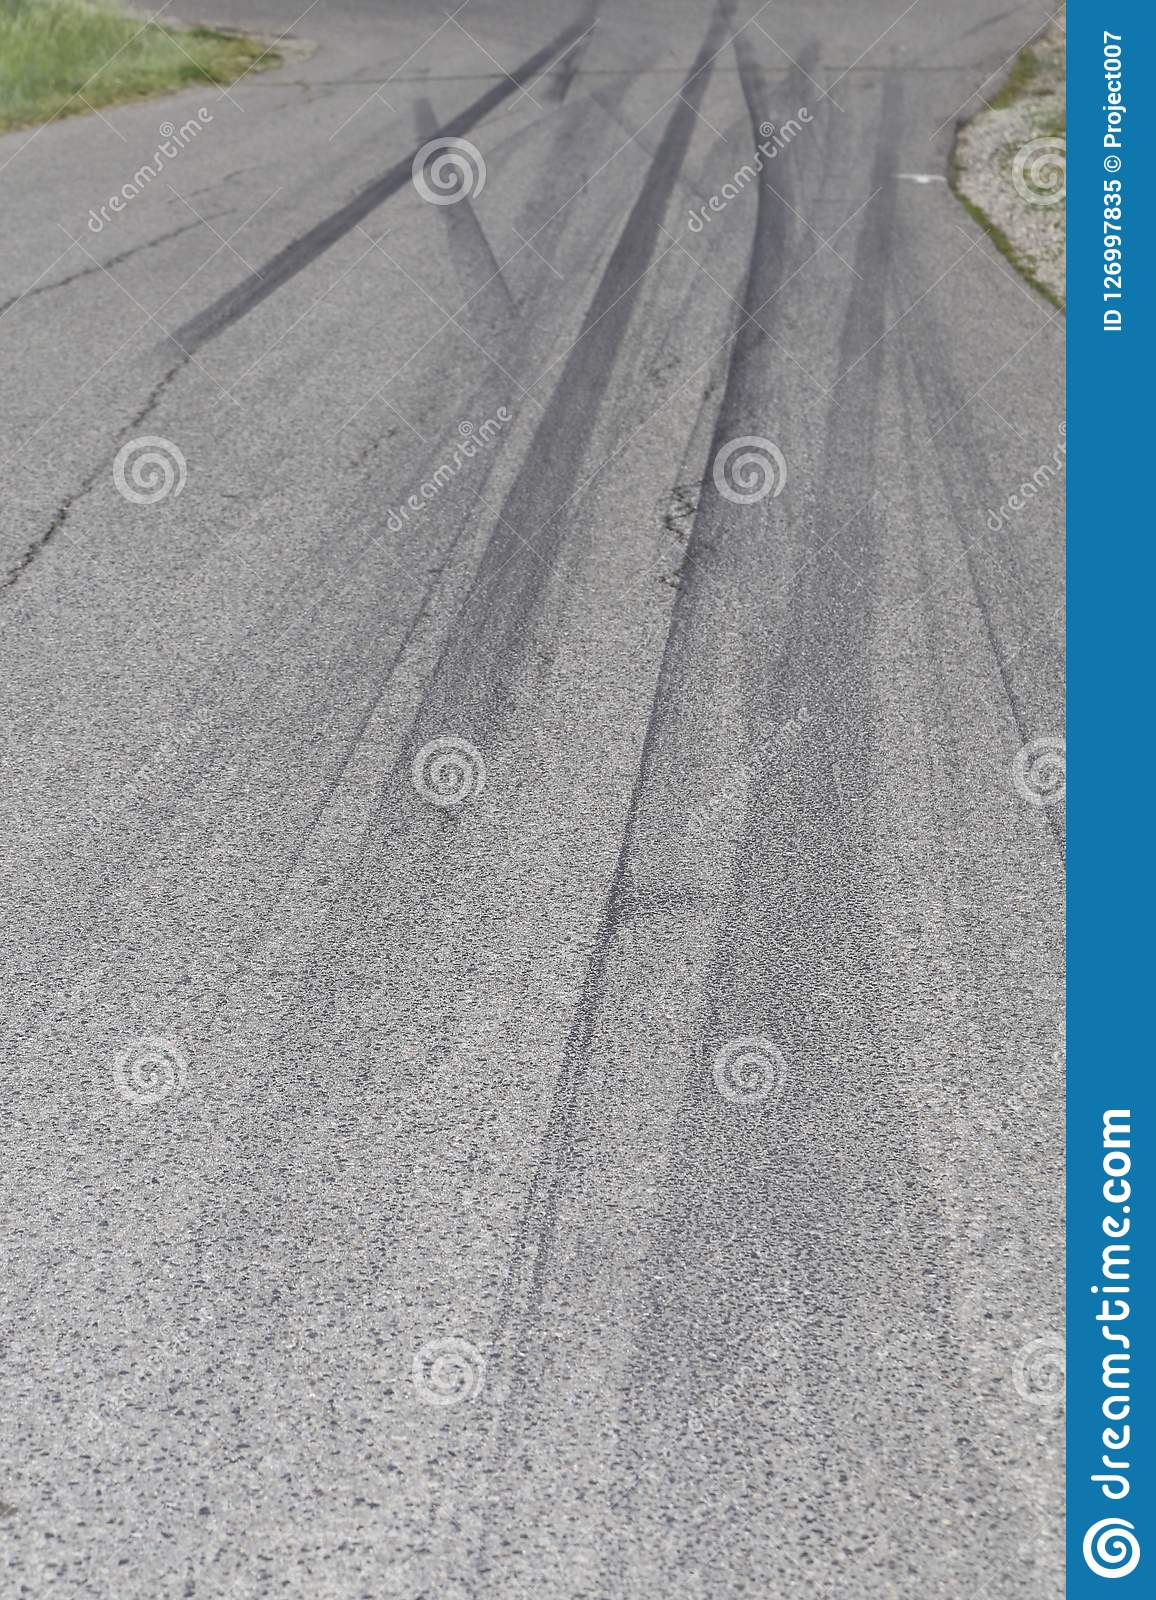 Skid marks from tire on road- police message for front cover or billboards.